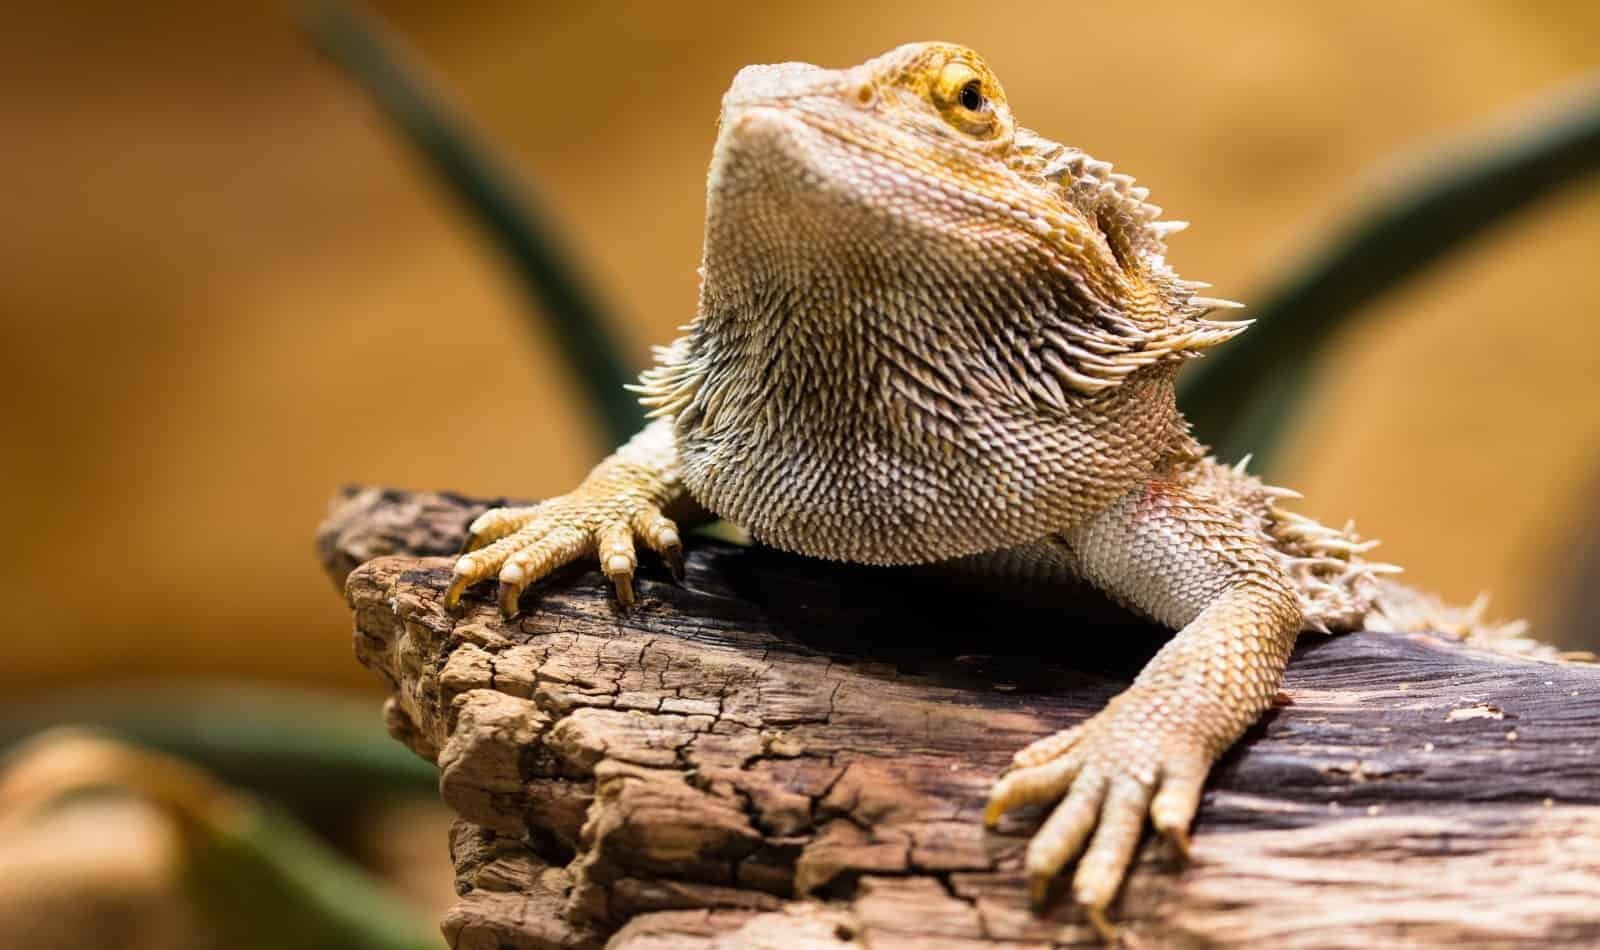 a cute yellowish bearded dragon that matches bearded dragon science themed names